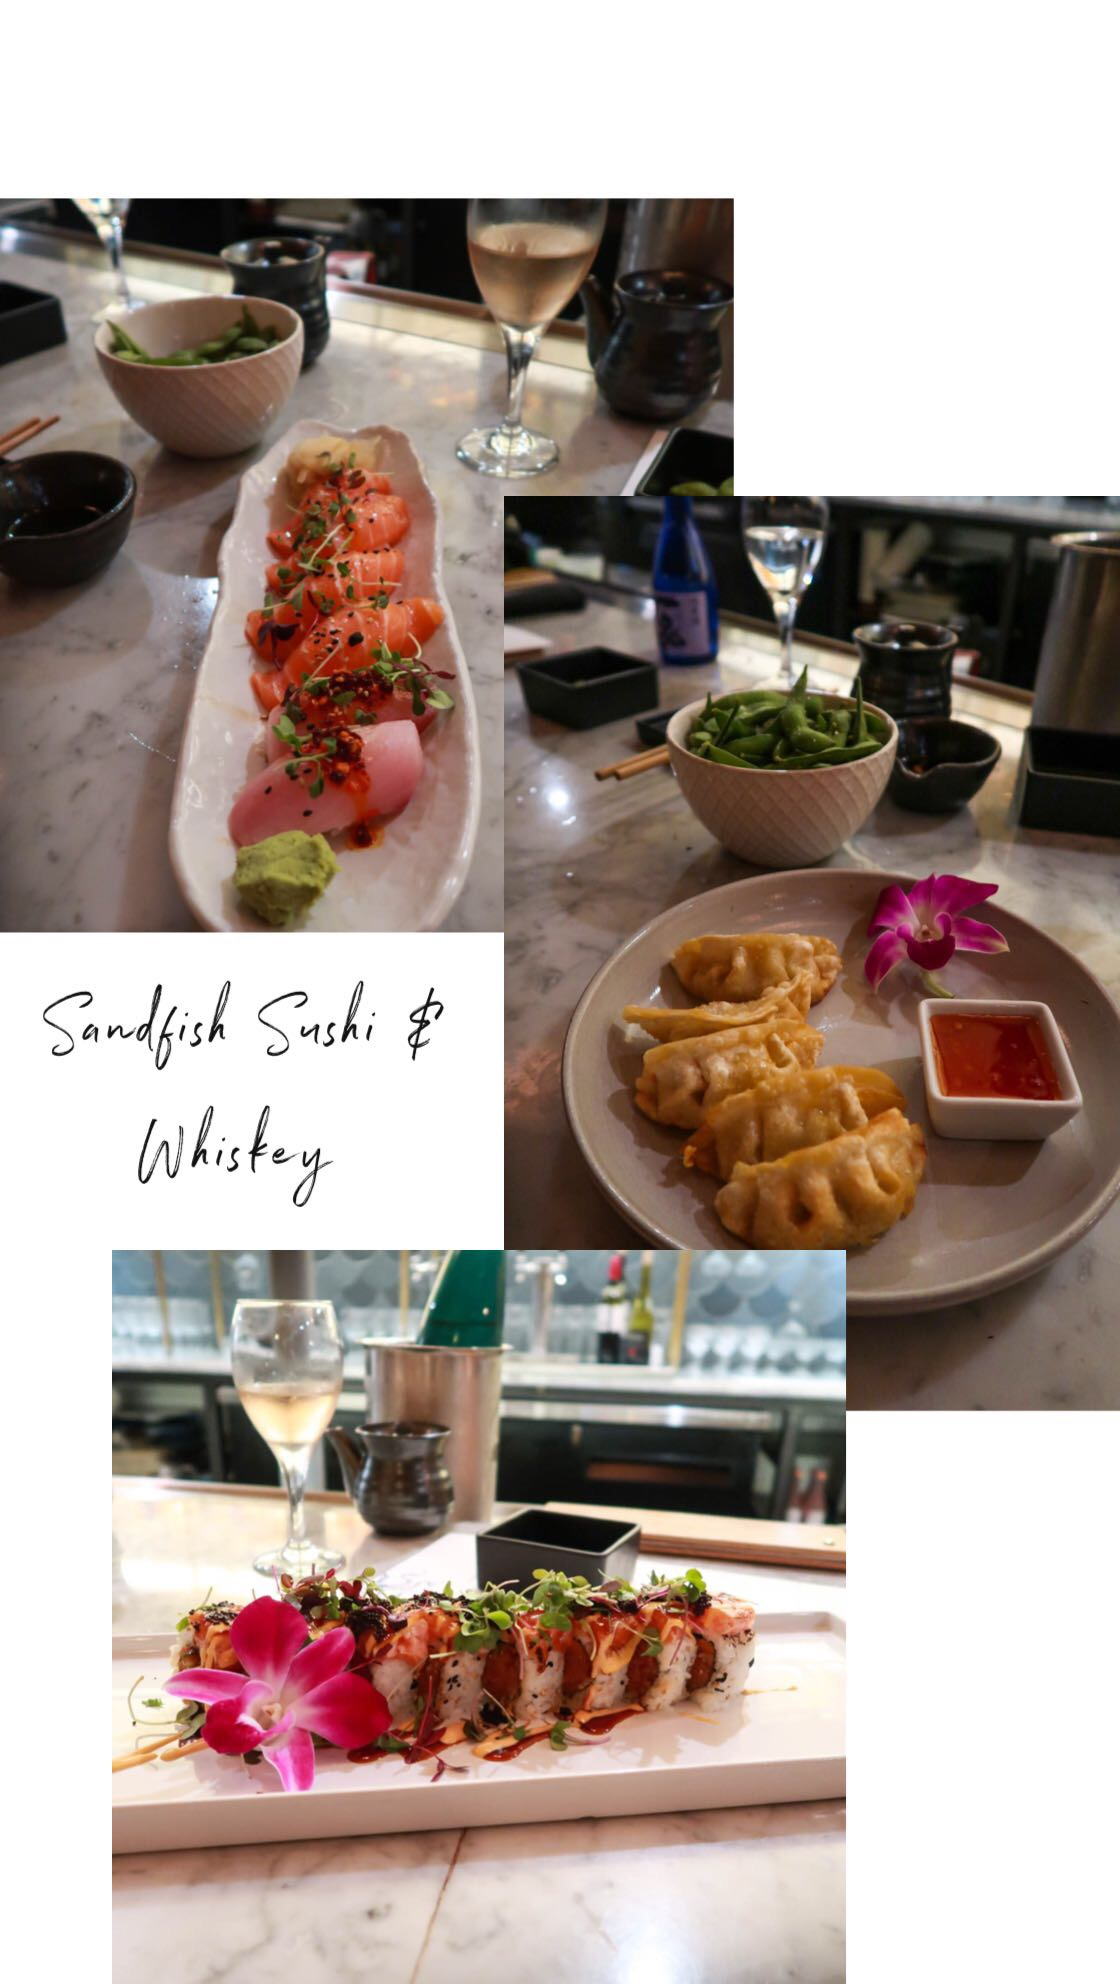 Sandfish Sushi & Whiskey - Palm Springs - Lauren Schwaiger Travel Blog